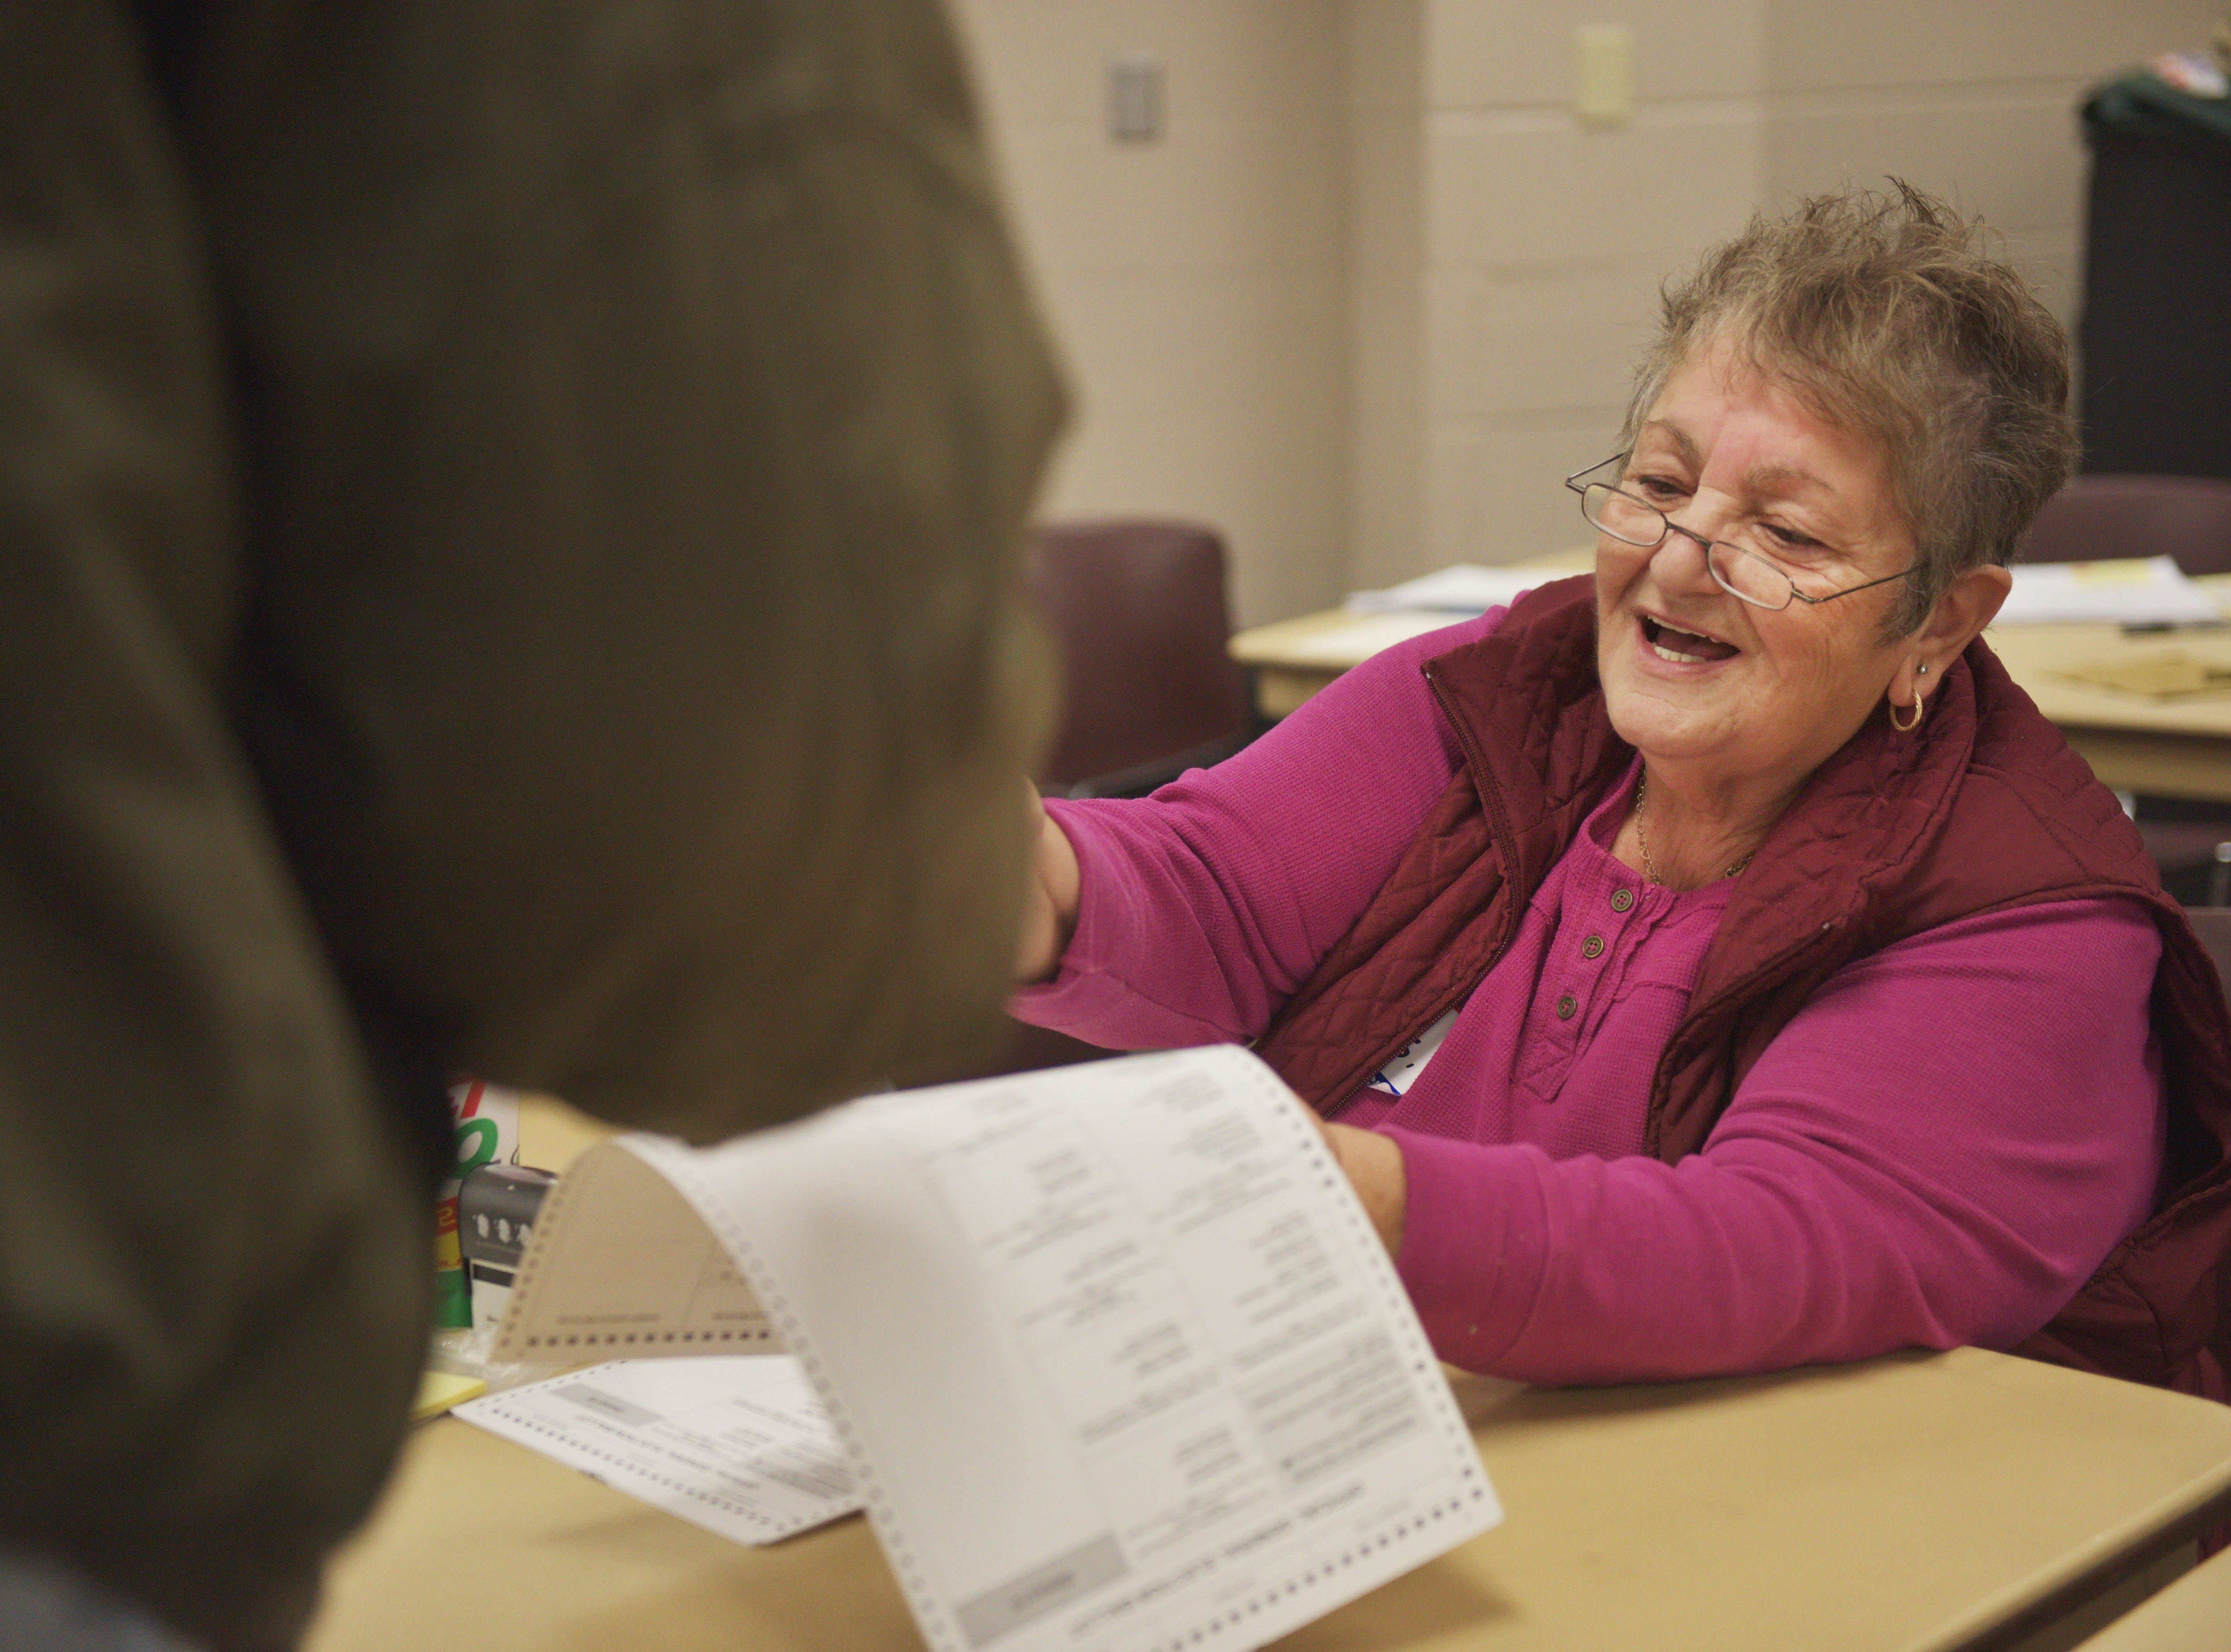 Poll worker Summer Stoll assists voters in the 2018 midterm elections Tuesday, Nov. 6, at First Lutheran Church in Sioux Falls.